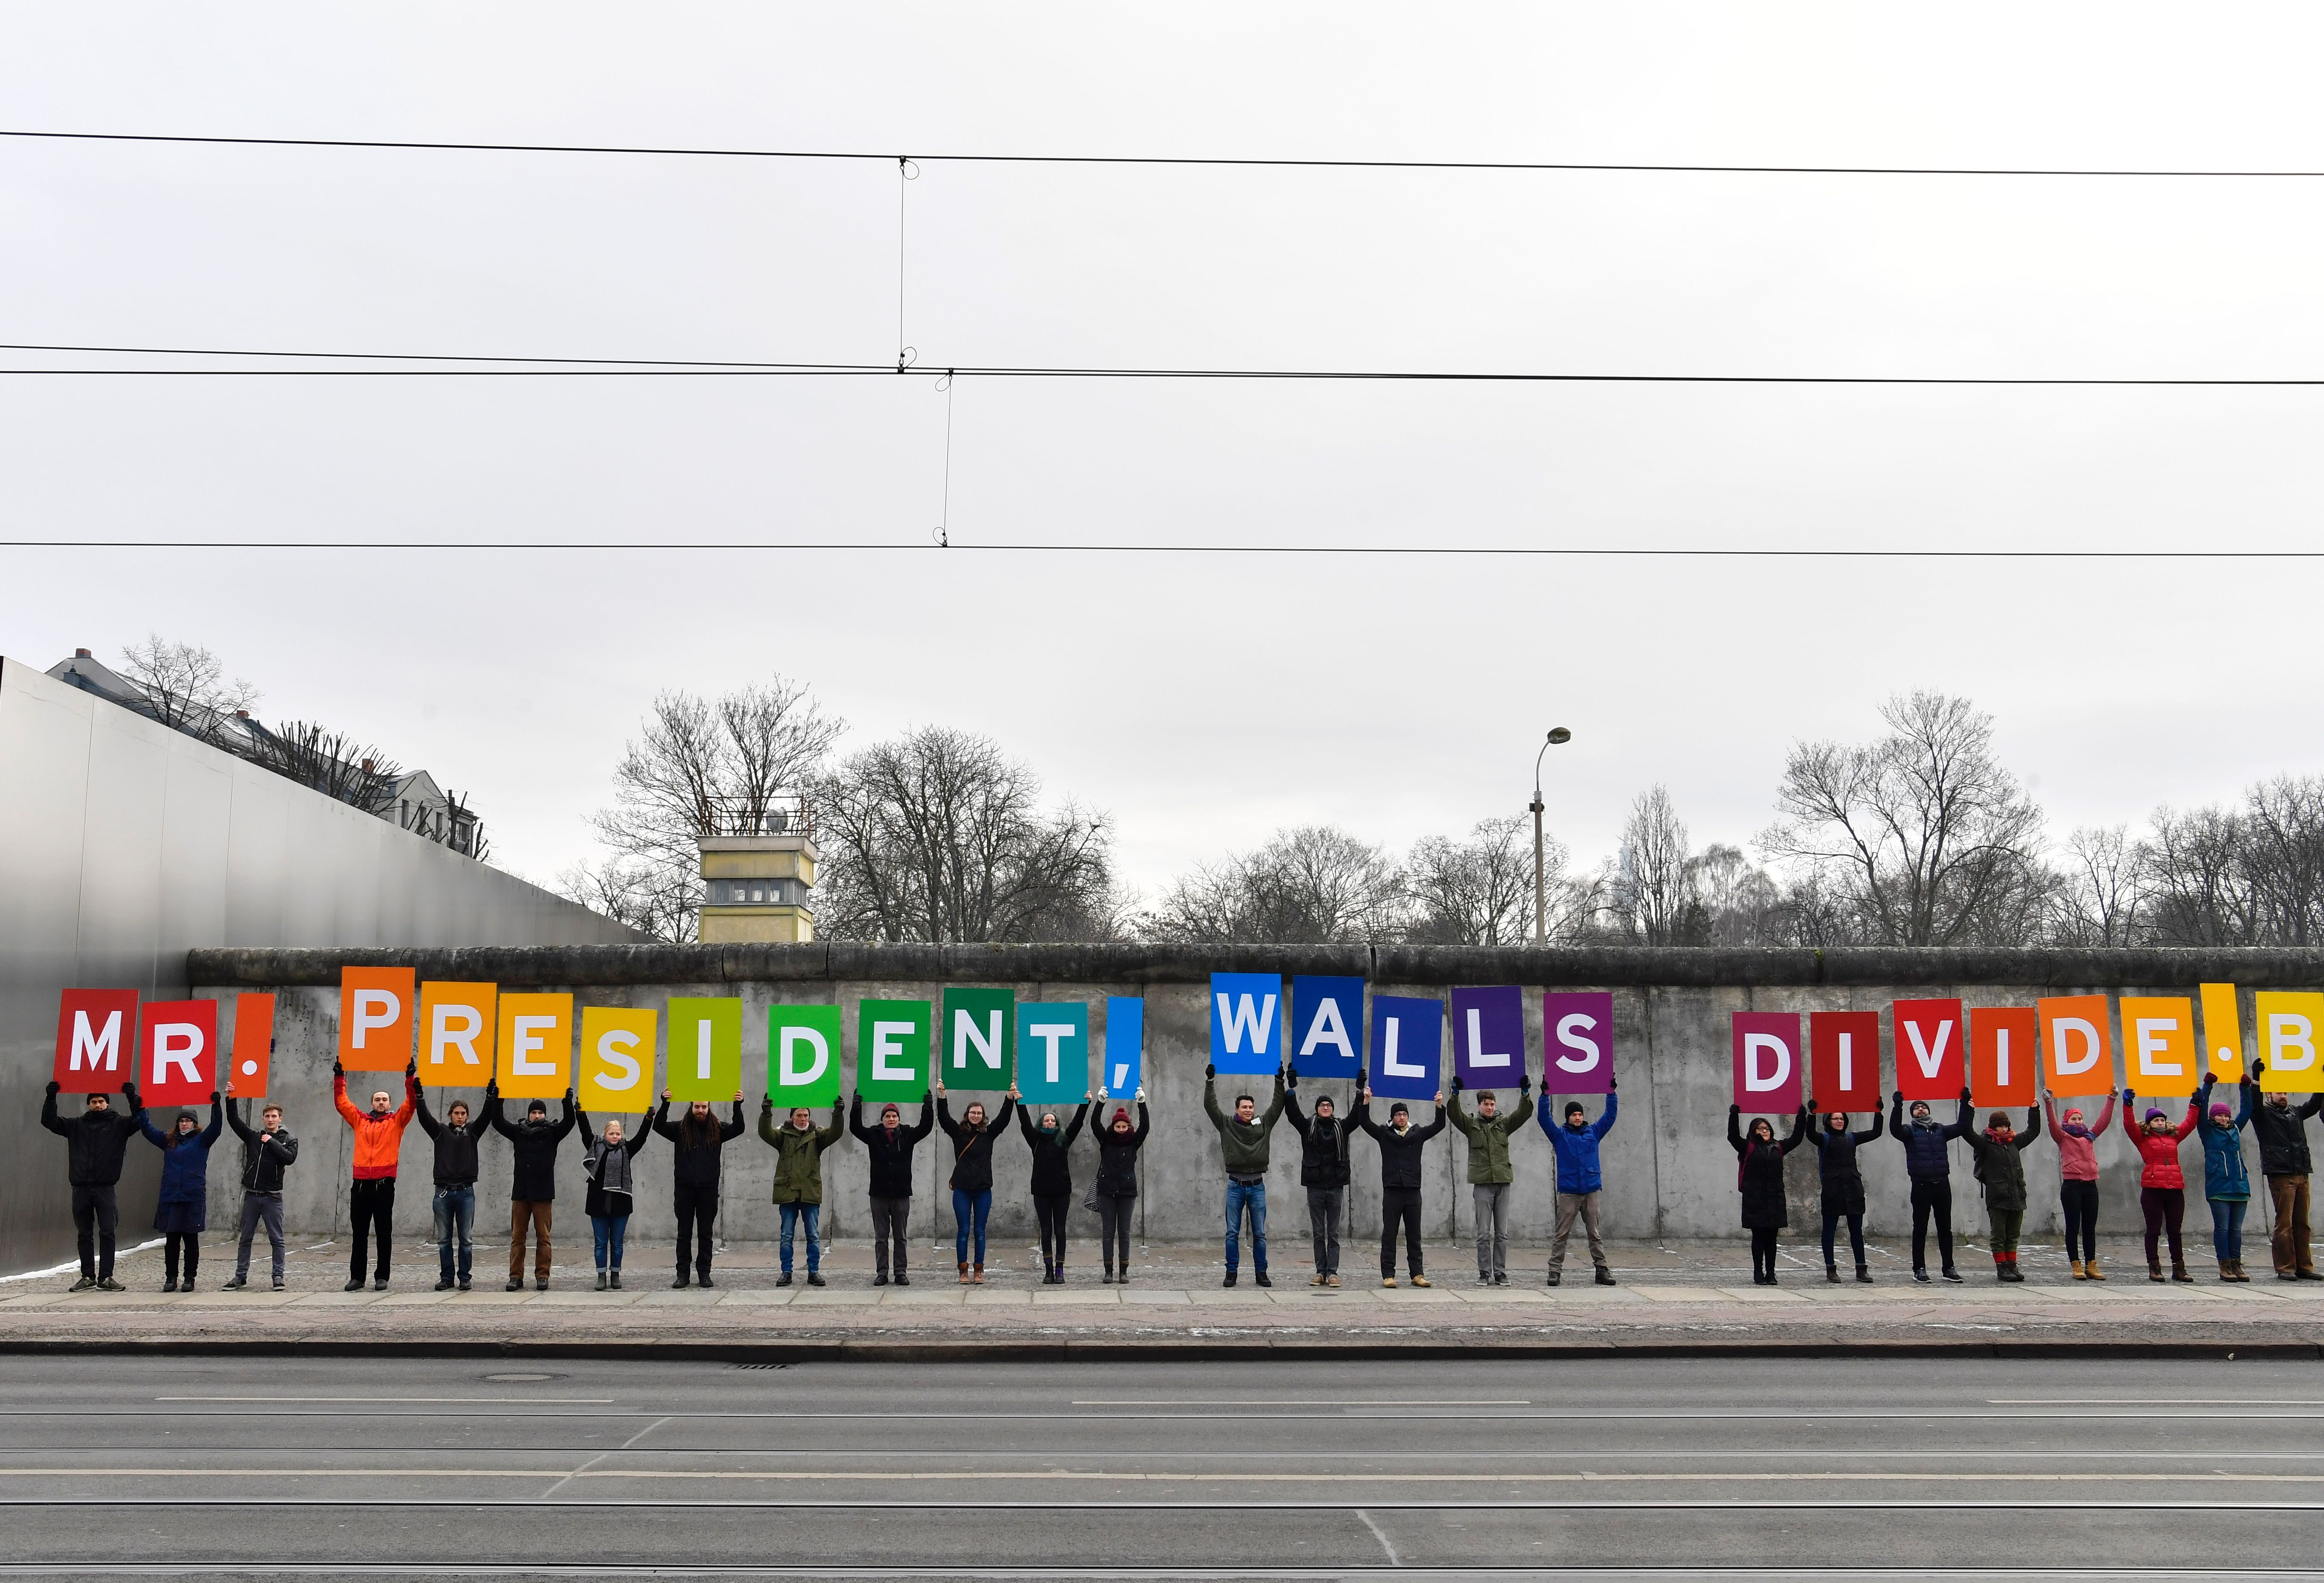 Activists from Greenpeace display a message reading  Mr. President, walls divide. Build Bridges!  along the Berlin wall in Berlin on Jan. 20, 2017 to coincide with the inauguration of U.S. President Donald Trump.